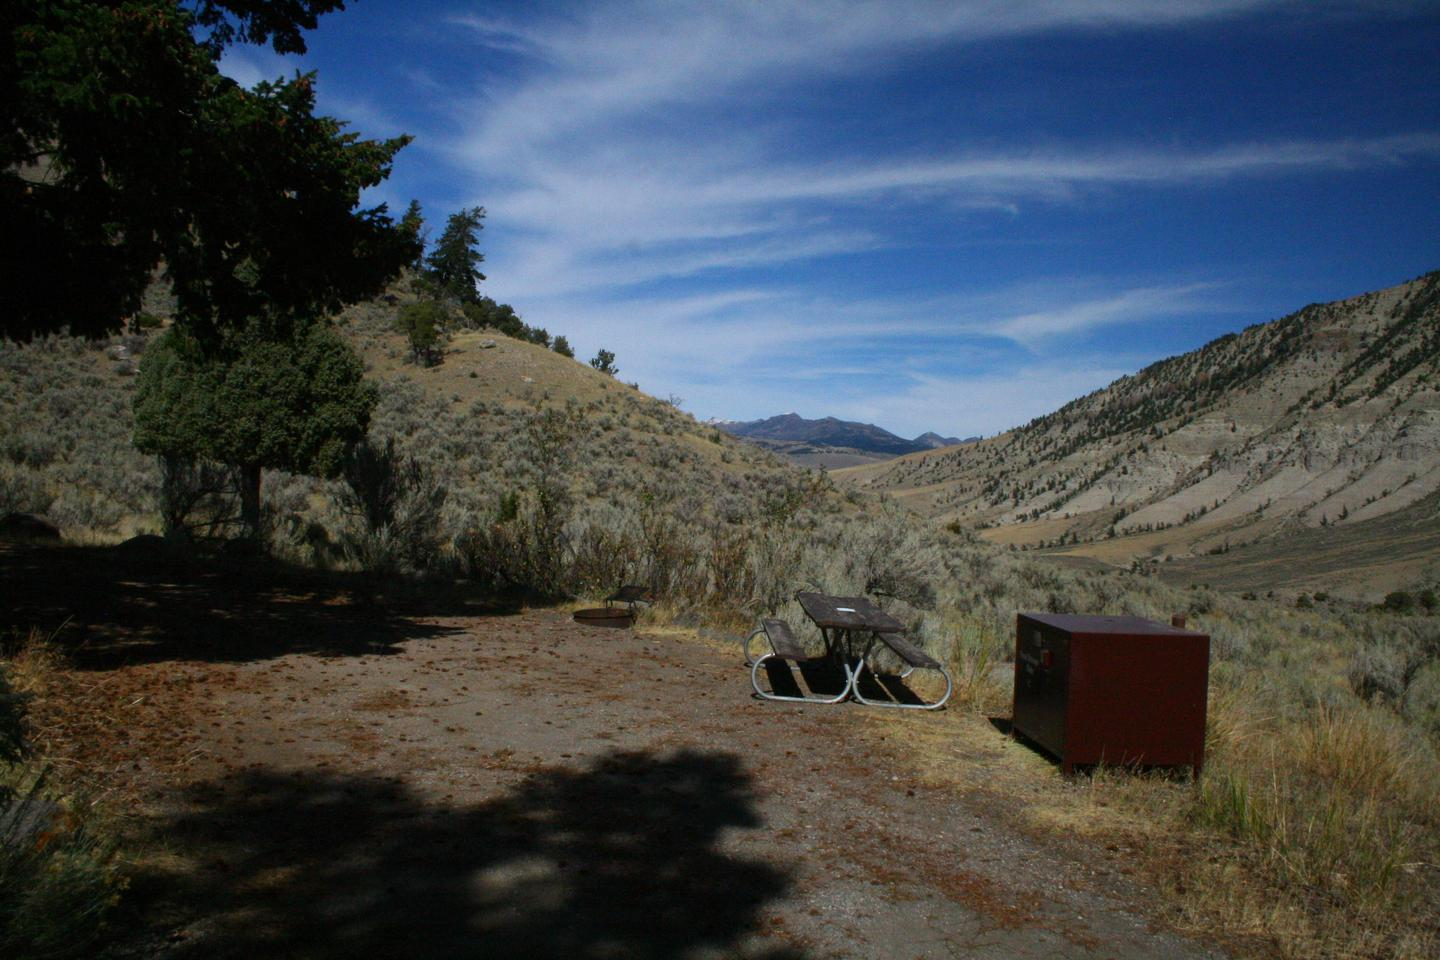 Mammoth Hot Springs Campground Site 45Mammoth Campsite #45